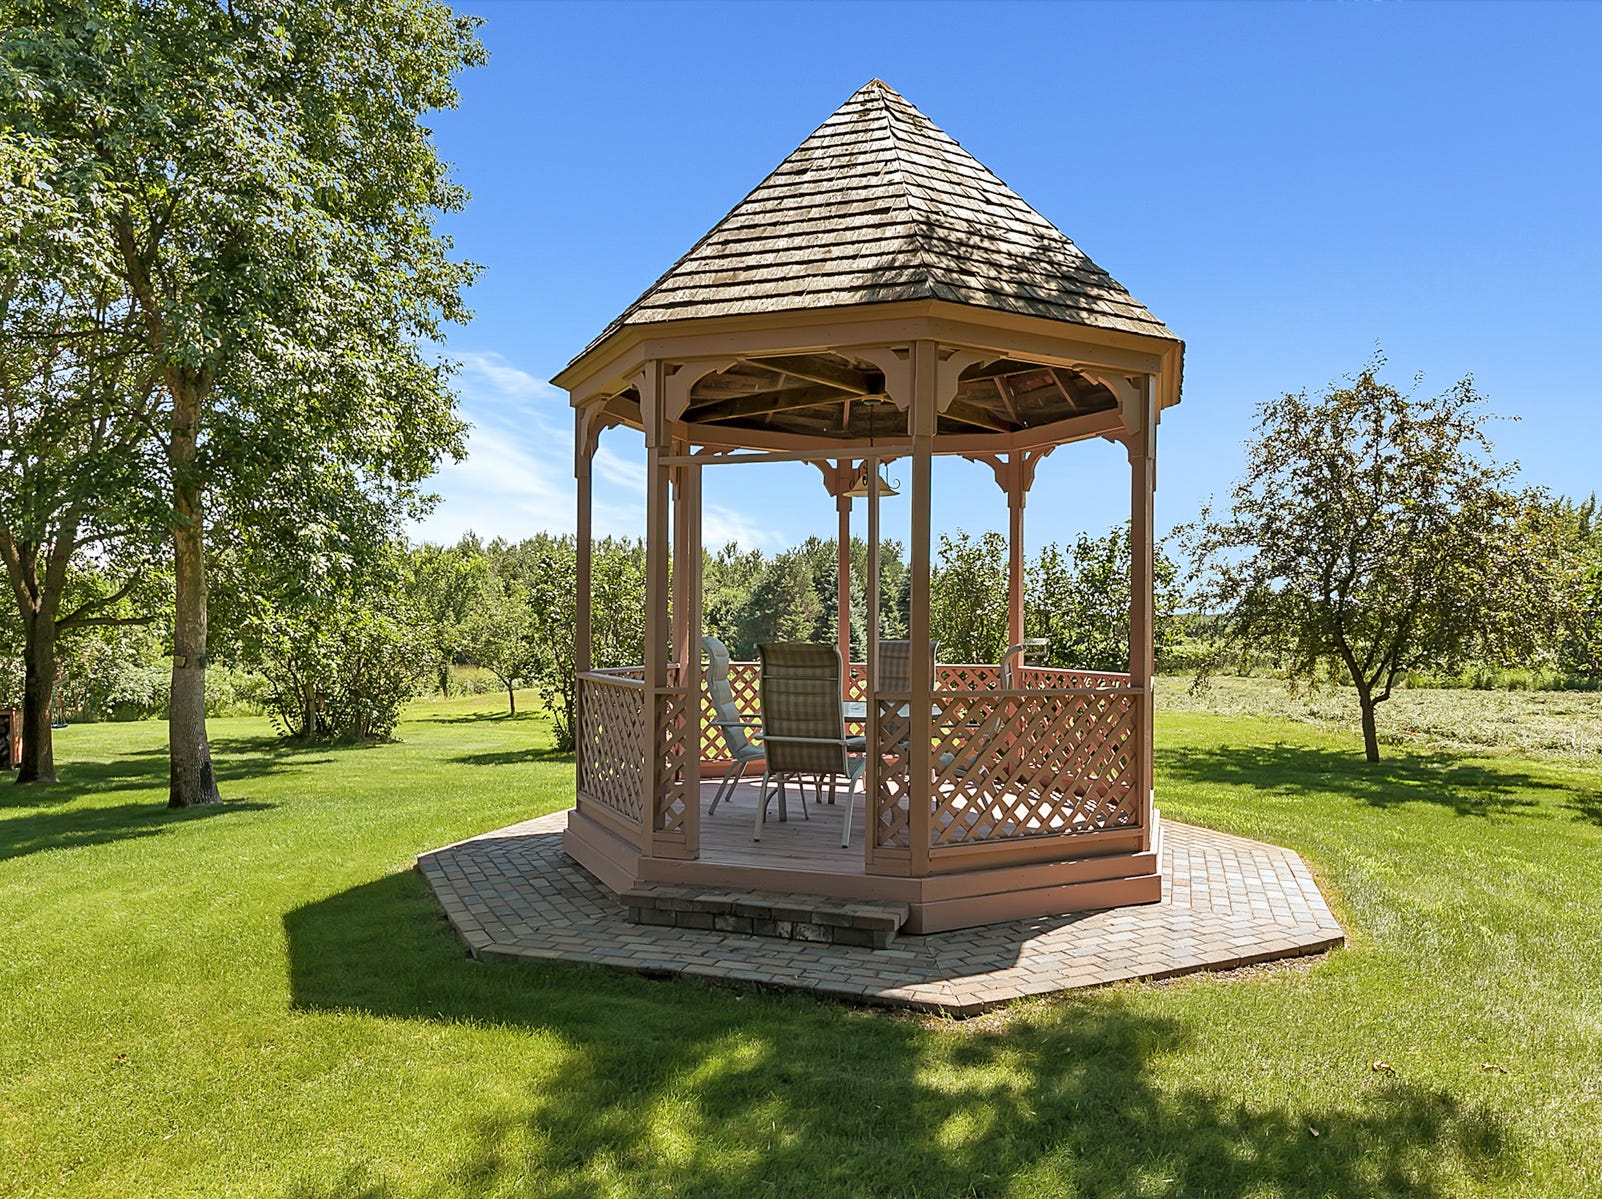 The home features a quaint gazebo to sit and relax after a hard day.